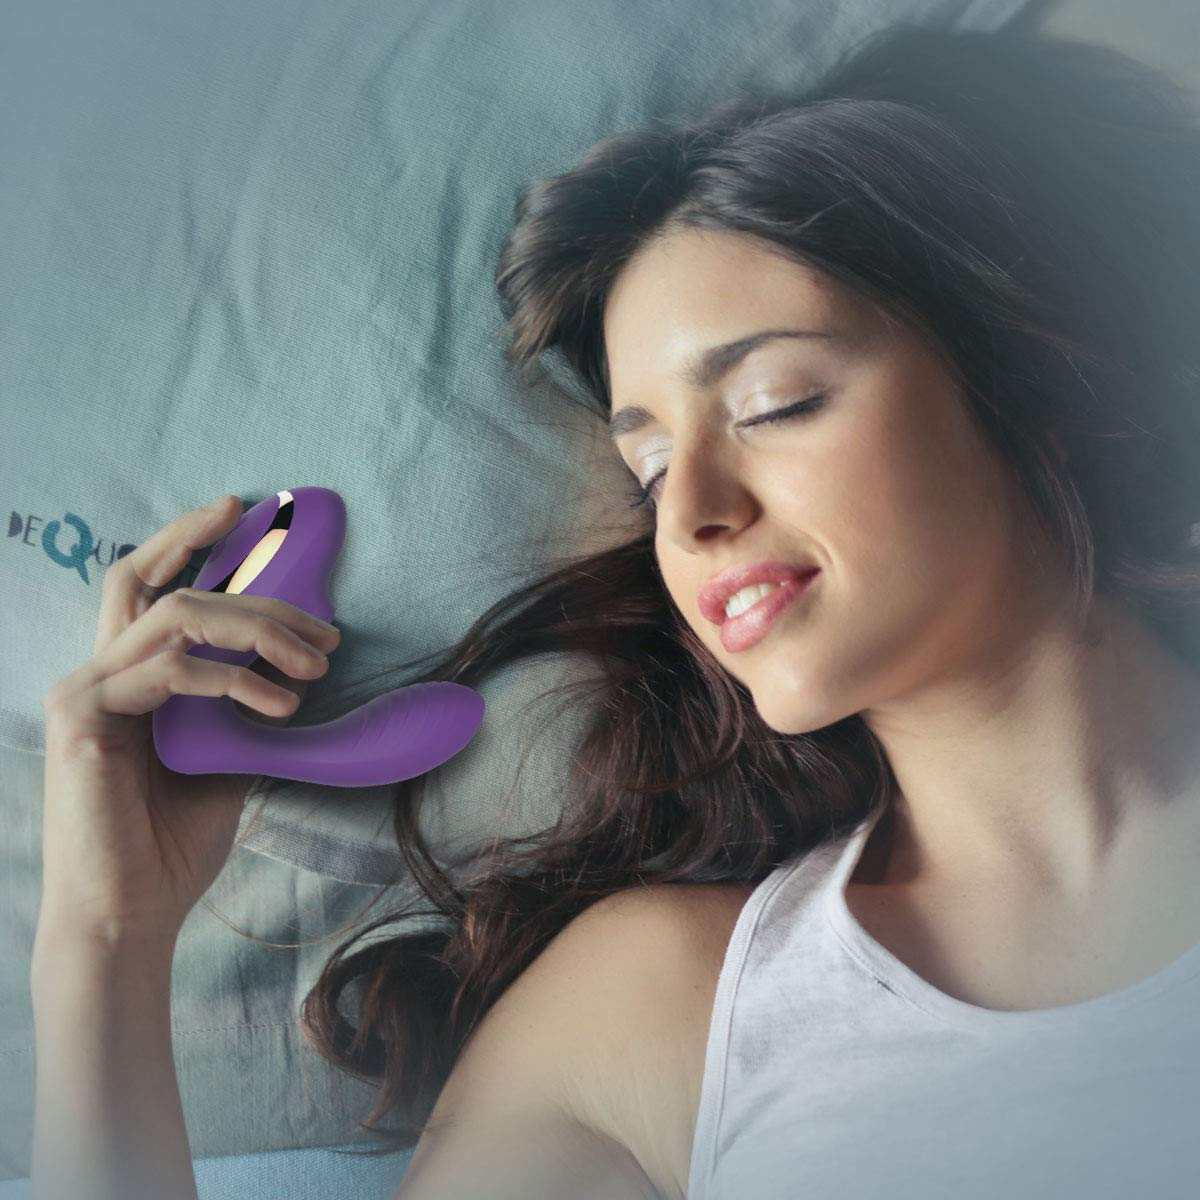 Clitoral Sucking Vibrator with Clitoris and G-Spot Stimulation, Wearable Dildos Couple Vibrators with 10 Suction & Vibration Settings, Rechargeable Waterproof Massager Sex Toys for Women by Tracy's Dog (Image #6)